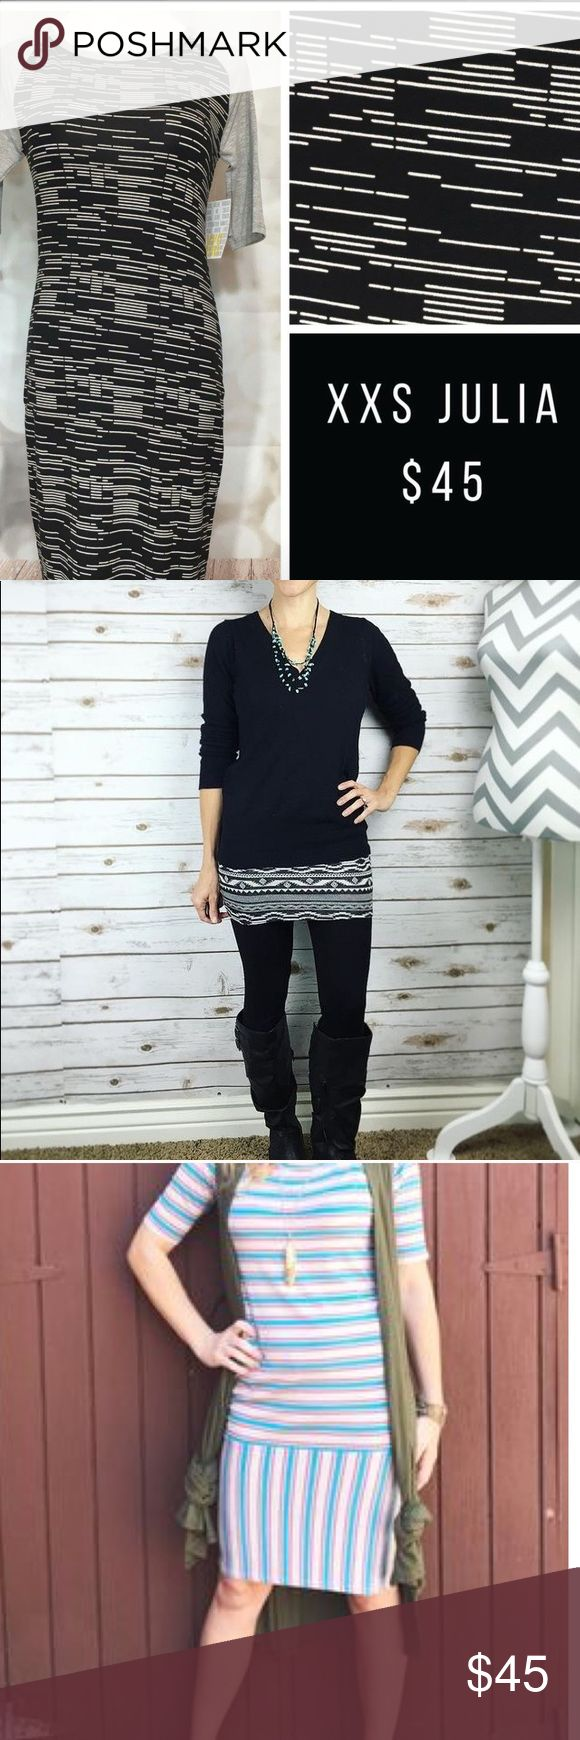 #Gray #Black #White #Geo #Julia #LuLaRoe NWT Absolutely gorgeous neutral pattern Bodycon style dress. Loved this on sight.   Wasn't our size. But we knew someone must need this!   So versatile! Year round wear!! Jean jacket or layered! Booties/ sandals/ over the knee boots- can't go wrong!   NWT Handpicked with Love LuLaRoe Dresses